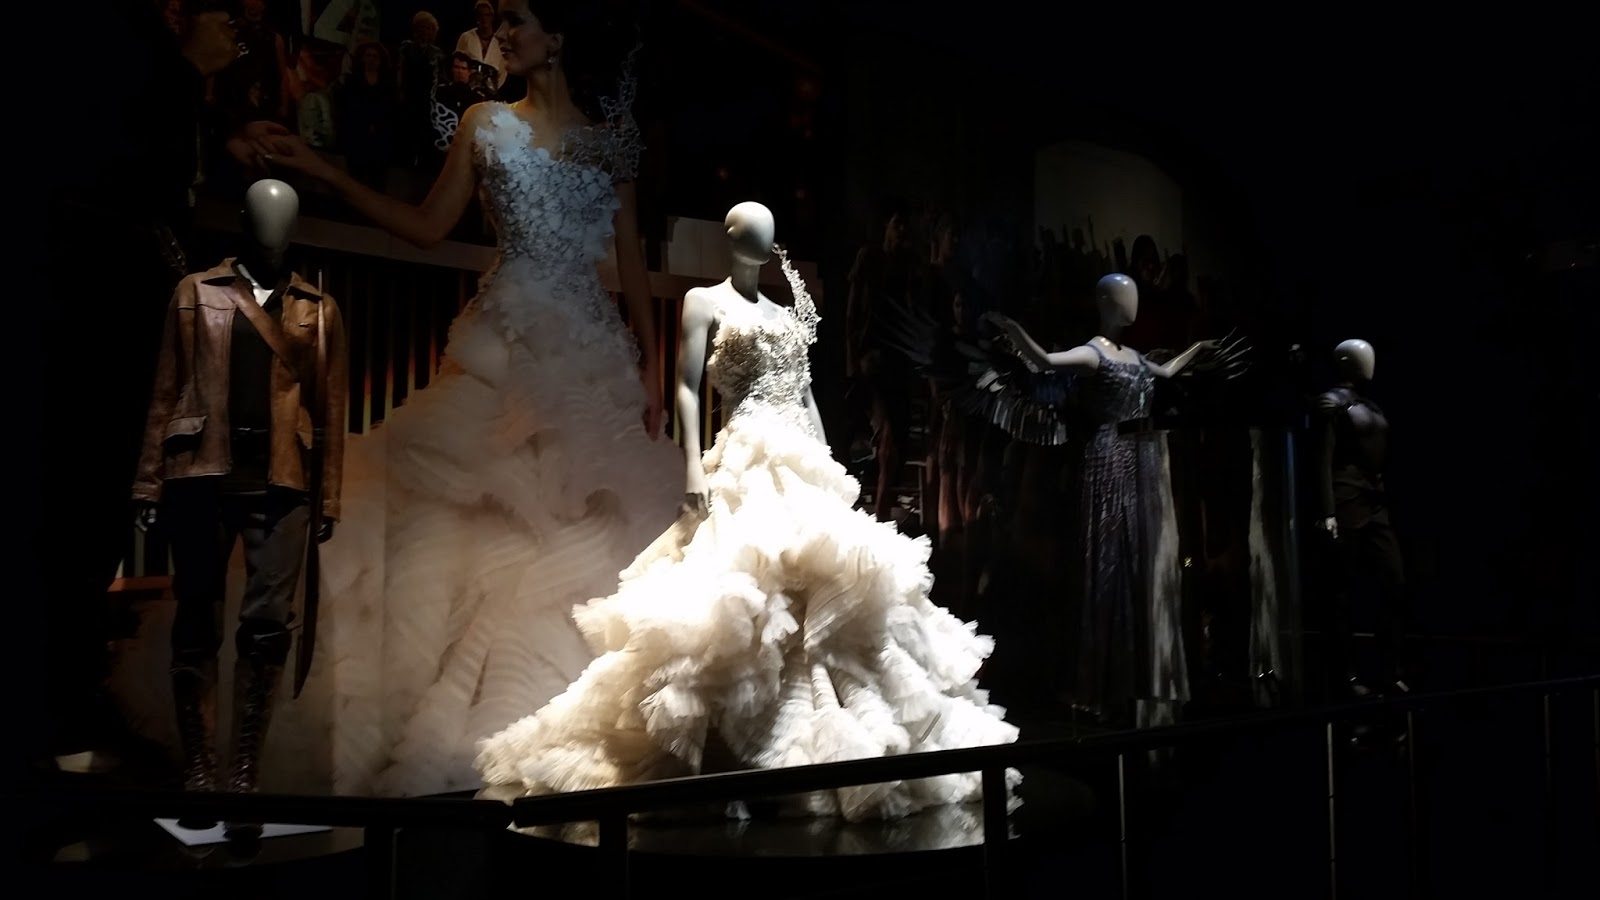 The hunger games catching fire katniss wedding dress designer - The Hunger Games Catching Fire Katniss Wedding Dress Designer 30